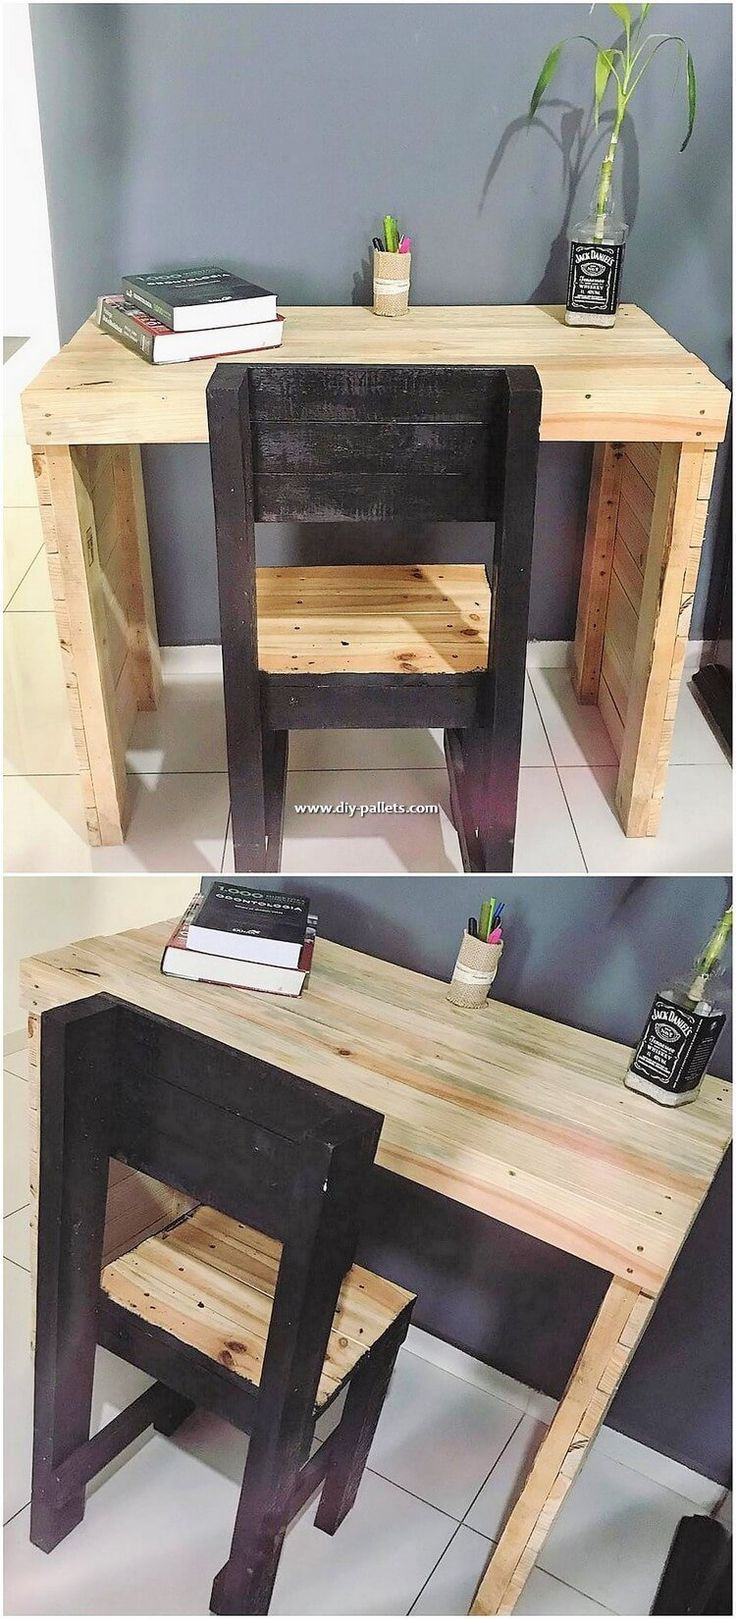 study table with chair on compact study room designs to help your kids study fun home design diy pallet furniture wooden pallet projects study table and chair diy pallet furniture